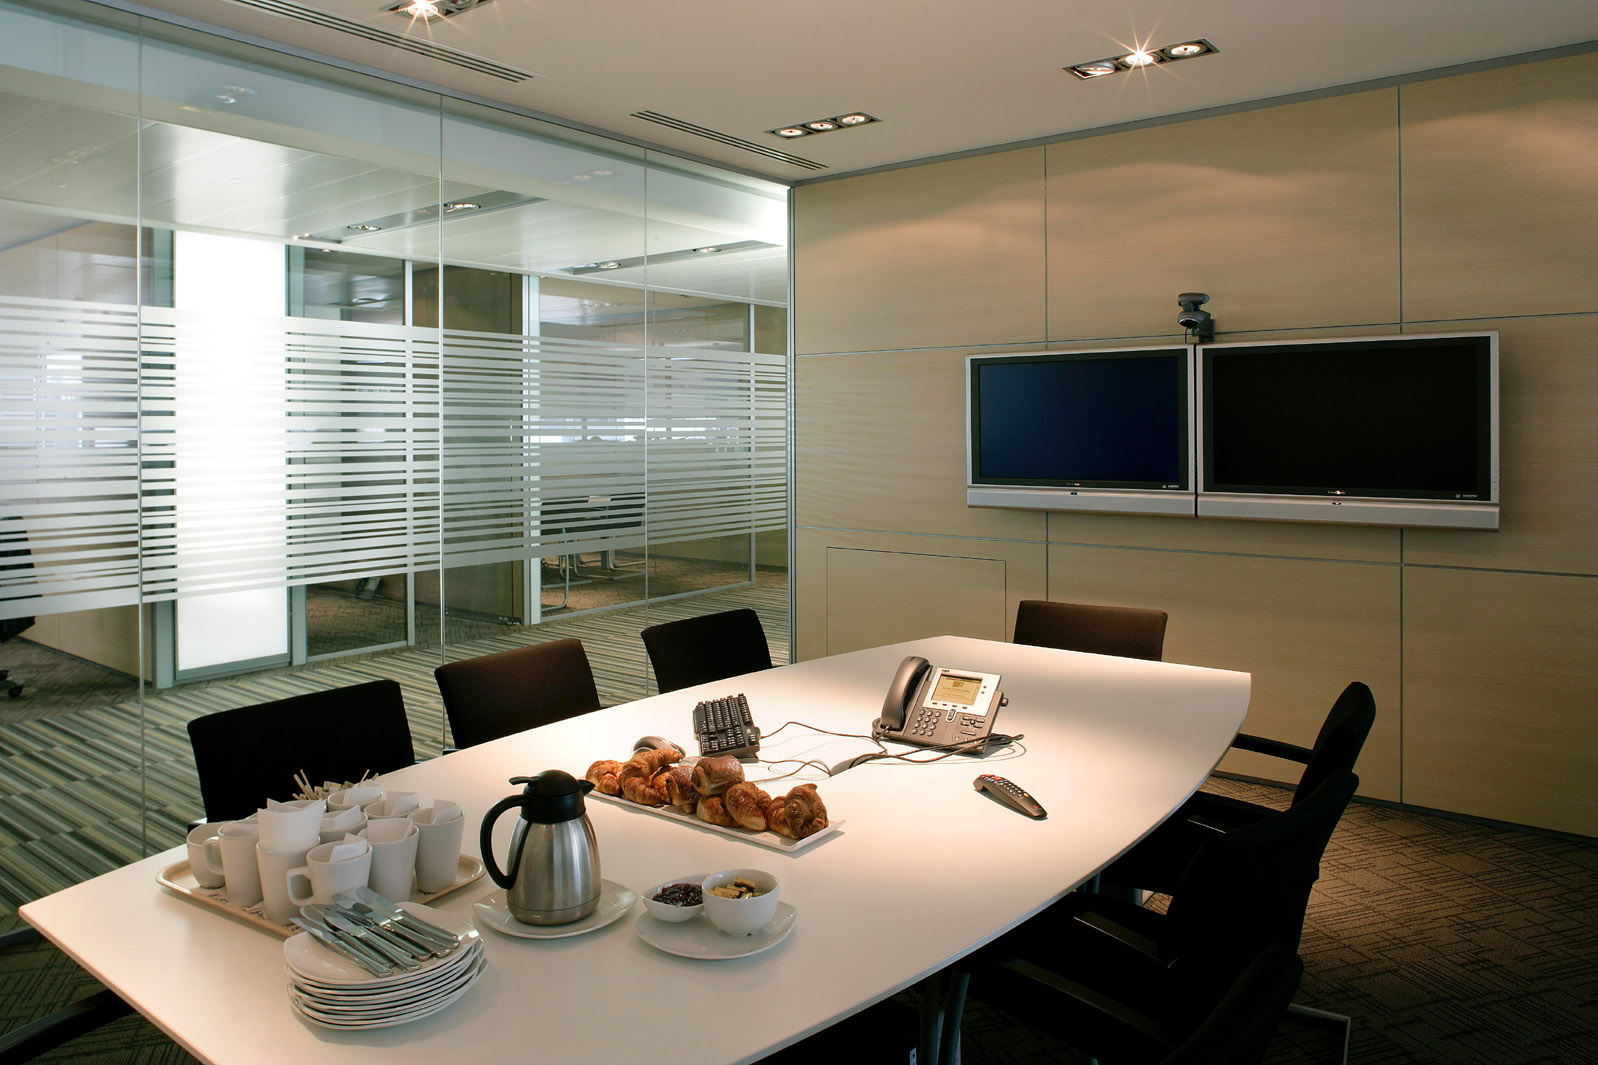 Awesome Meeting Room Interior In The Office : Modern Meeting Room With Glasses